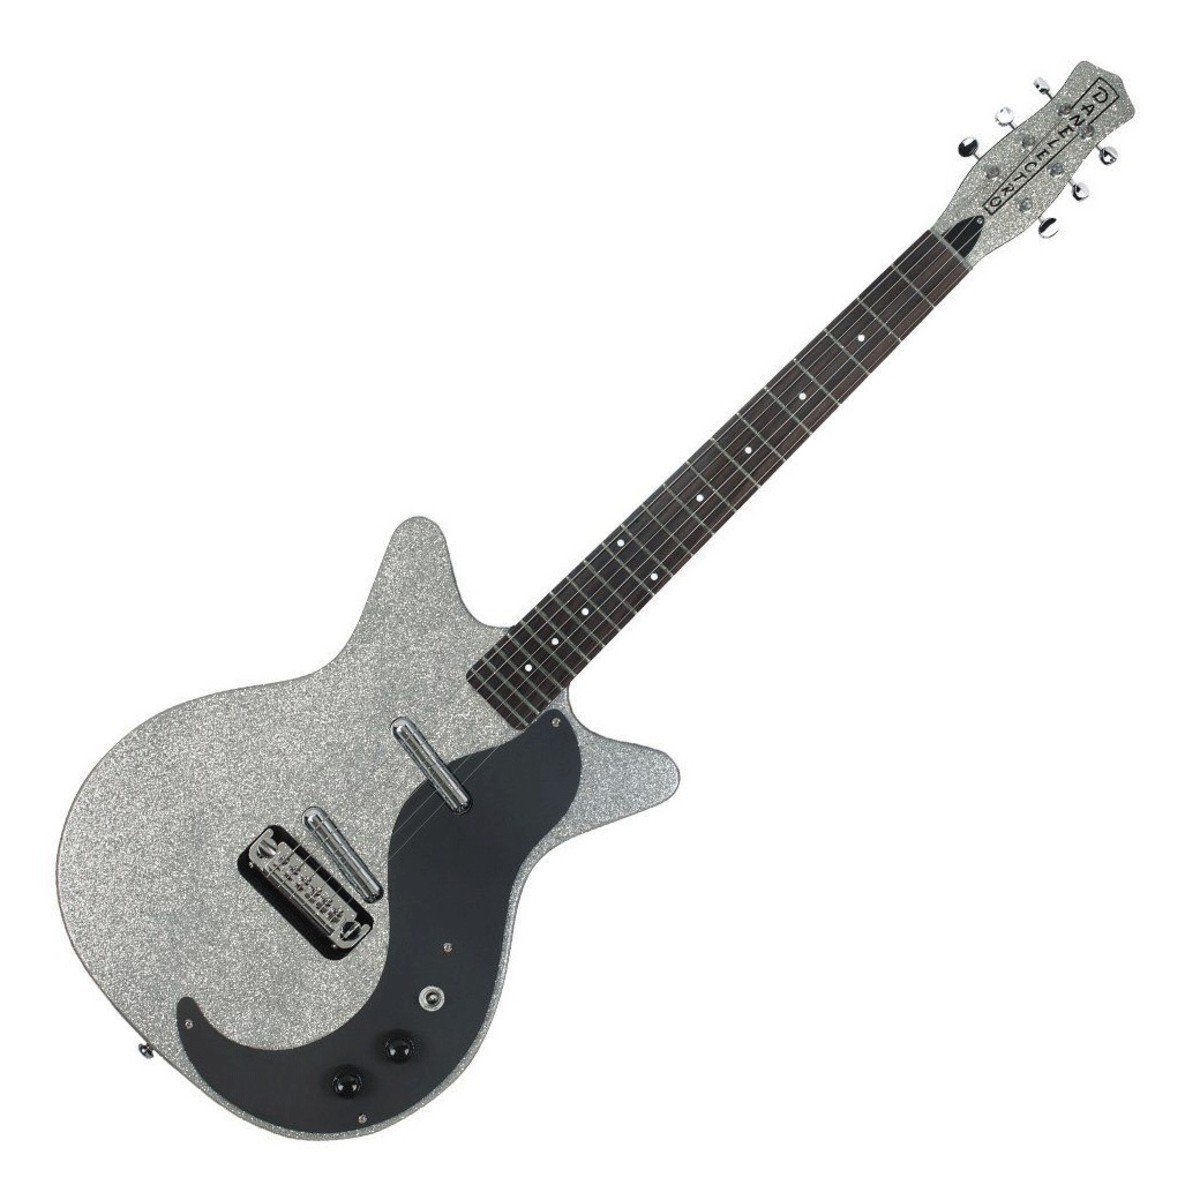 Danelectro DC59 MJ Electric Guitar Silver Metal Flake